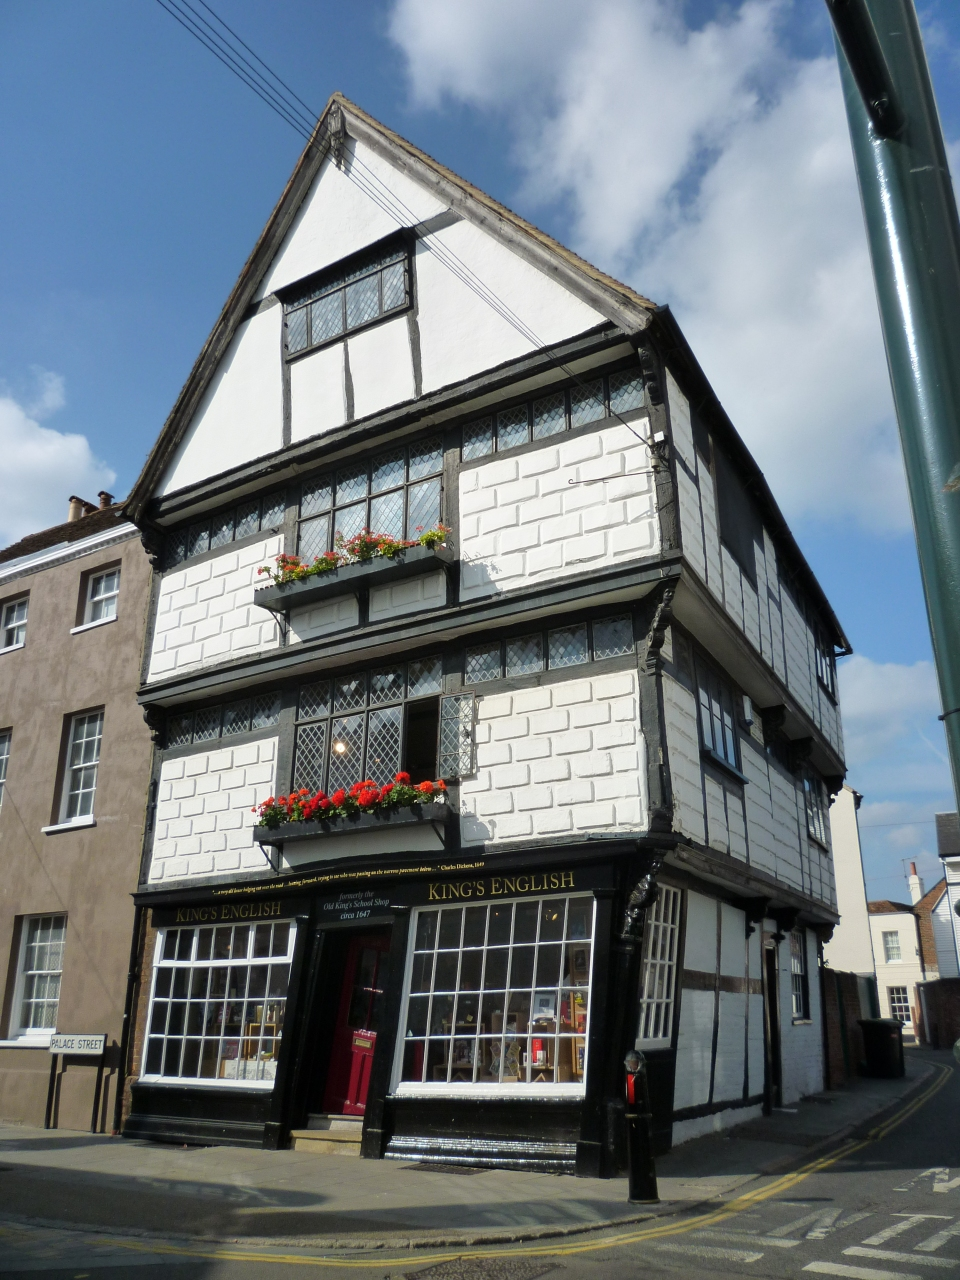 There was a crooked house...